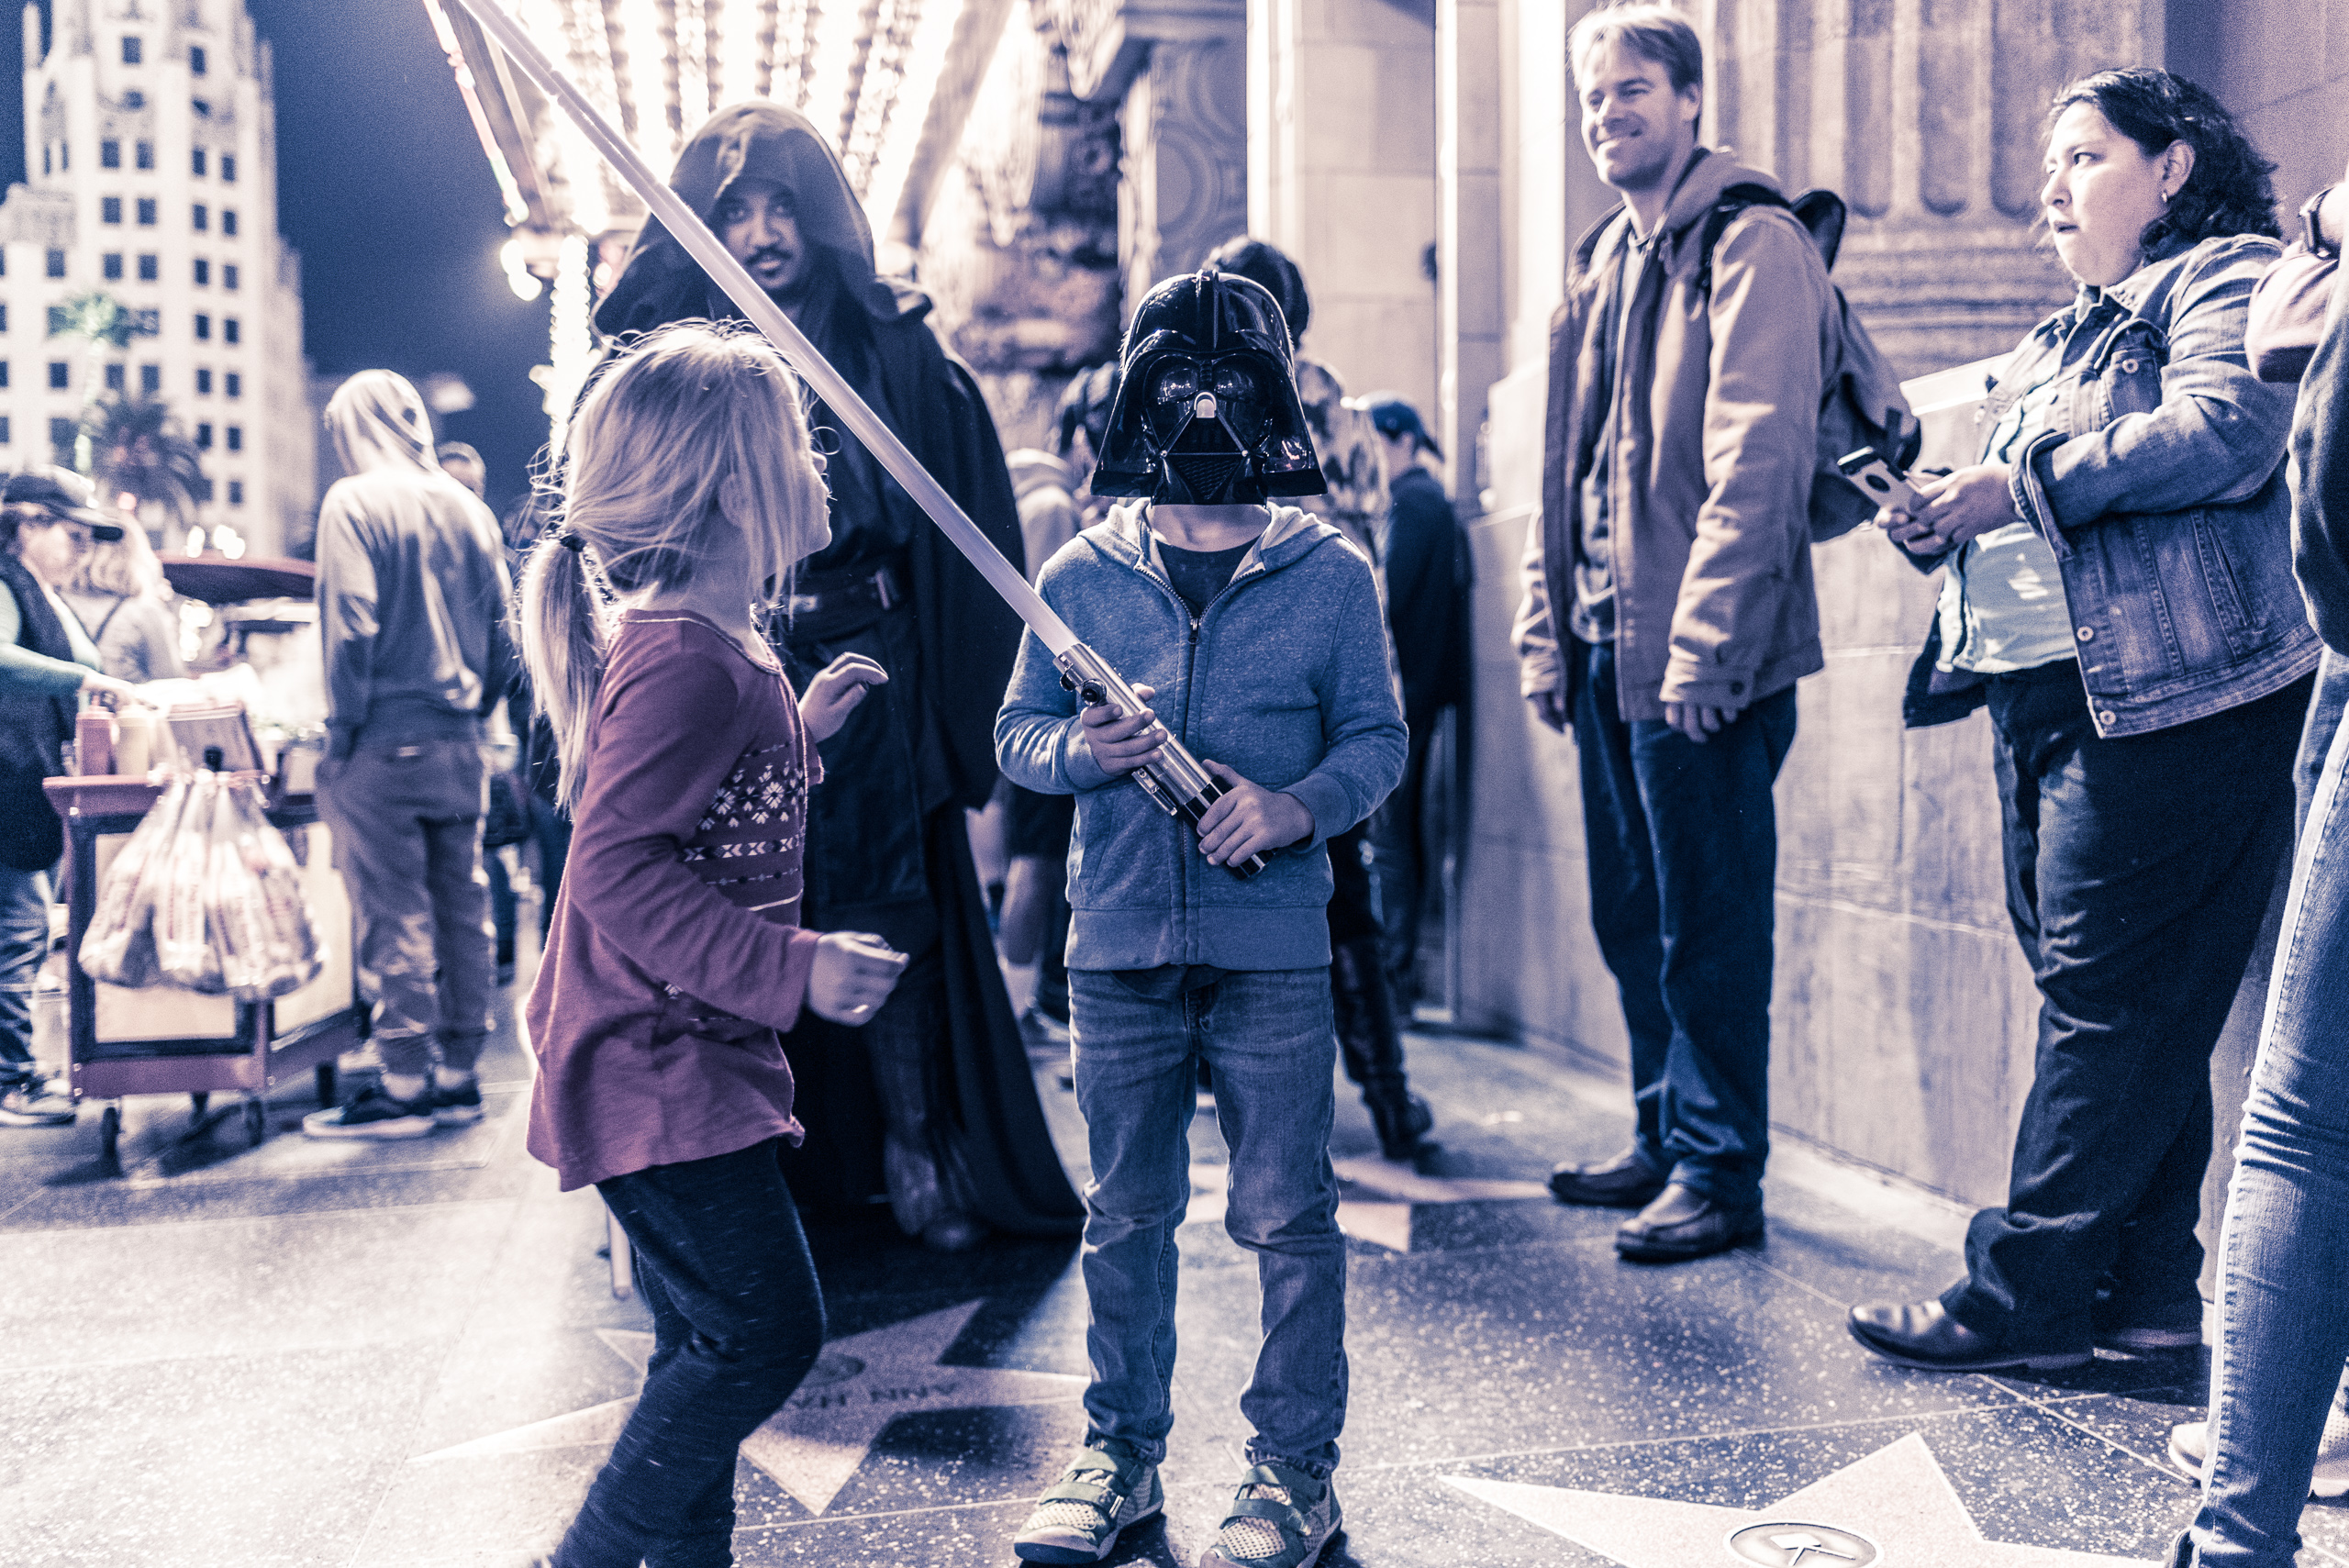 a young boy in a Darth Vader mask holds a light saber in front of the El Capitan theater on Hollywood Blvd.